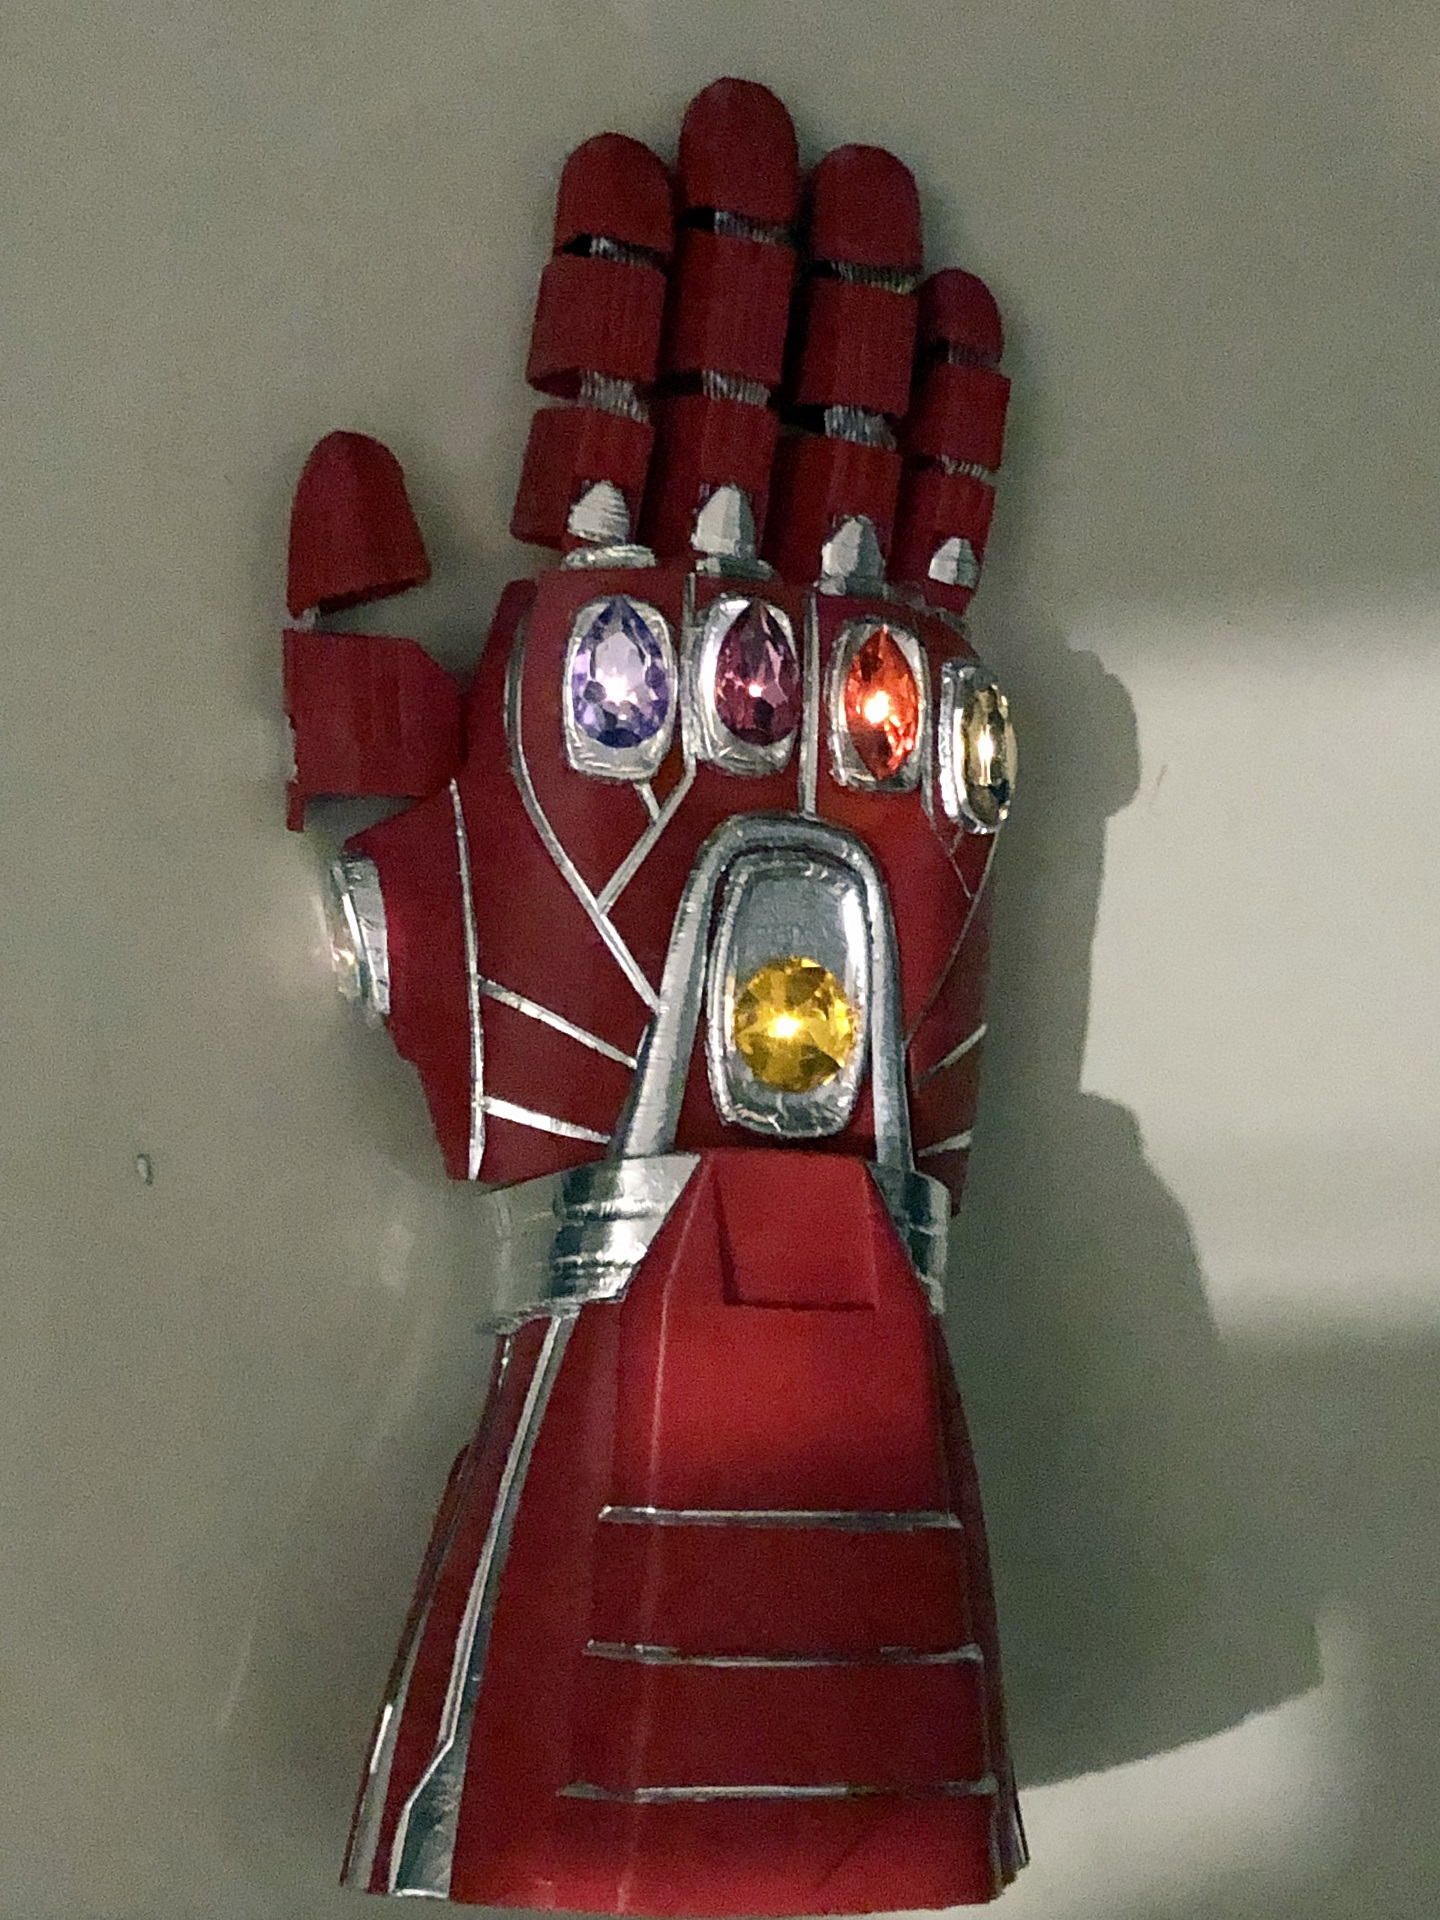 All you need to make an Endgame Nano Gauntlet is a 3D